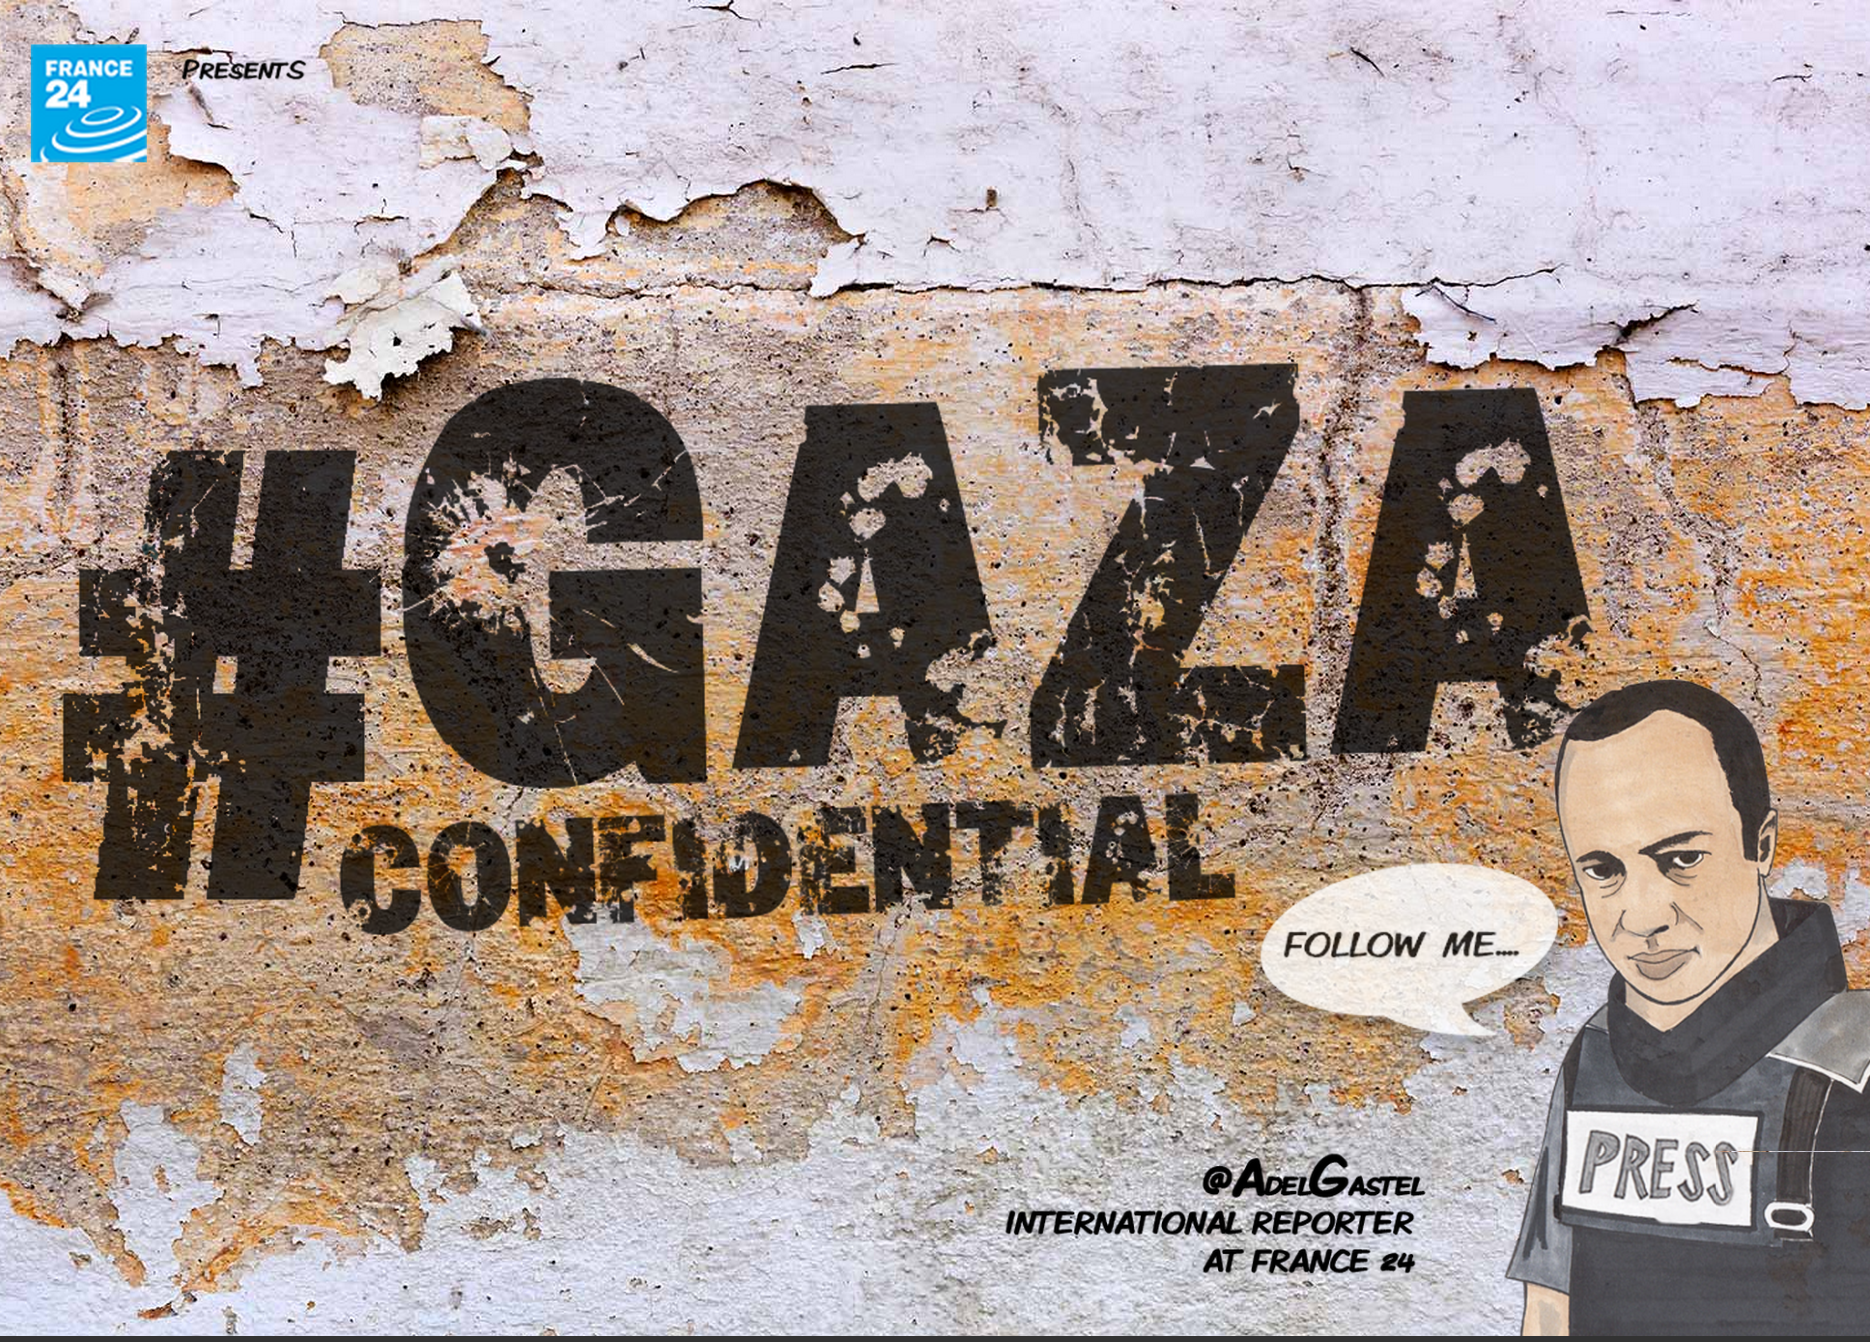 Gaza_Confidential_France24_Home1.png